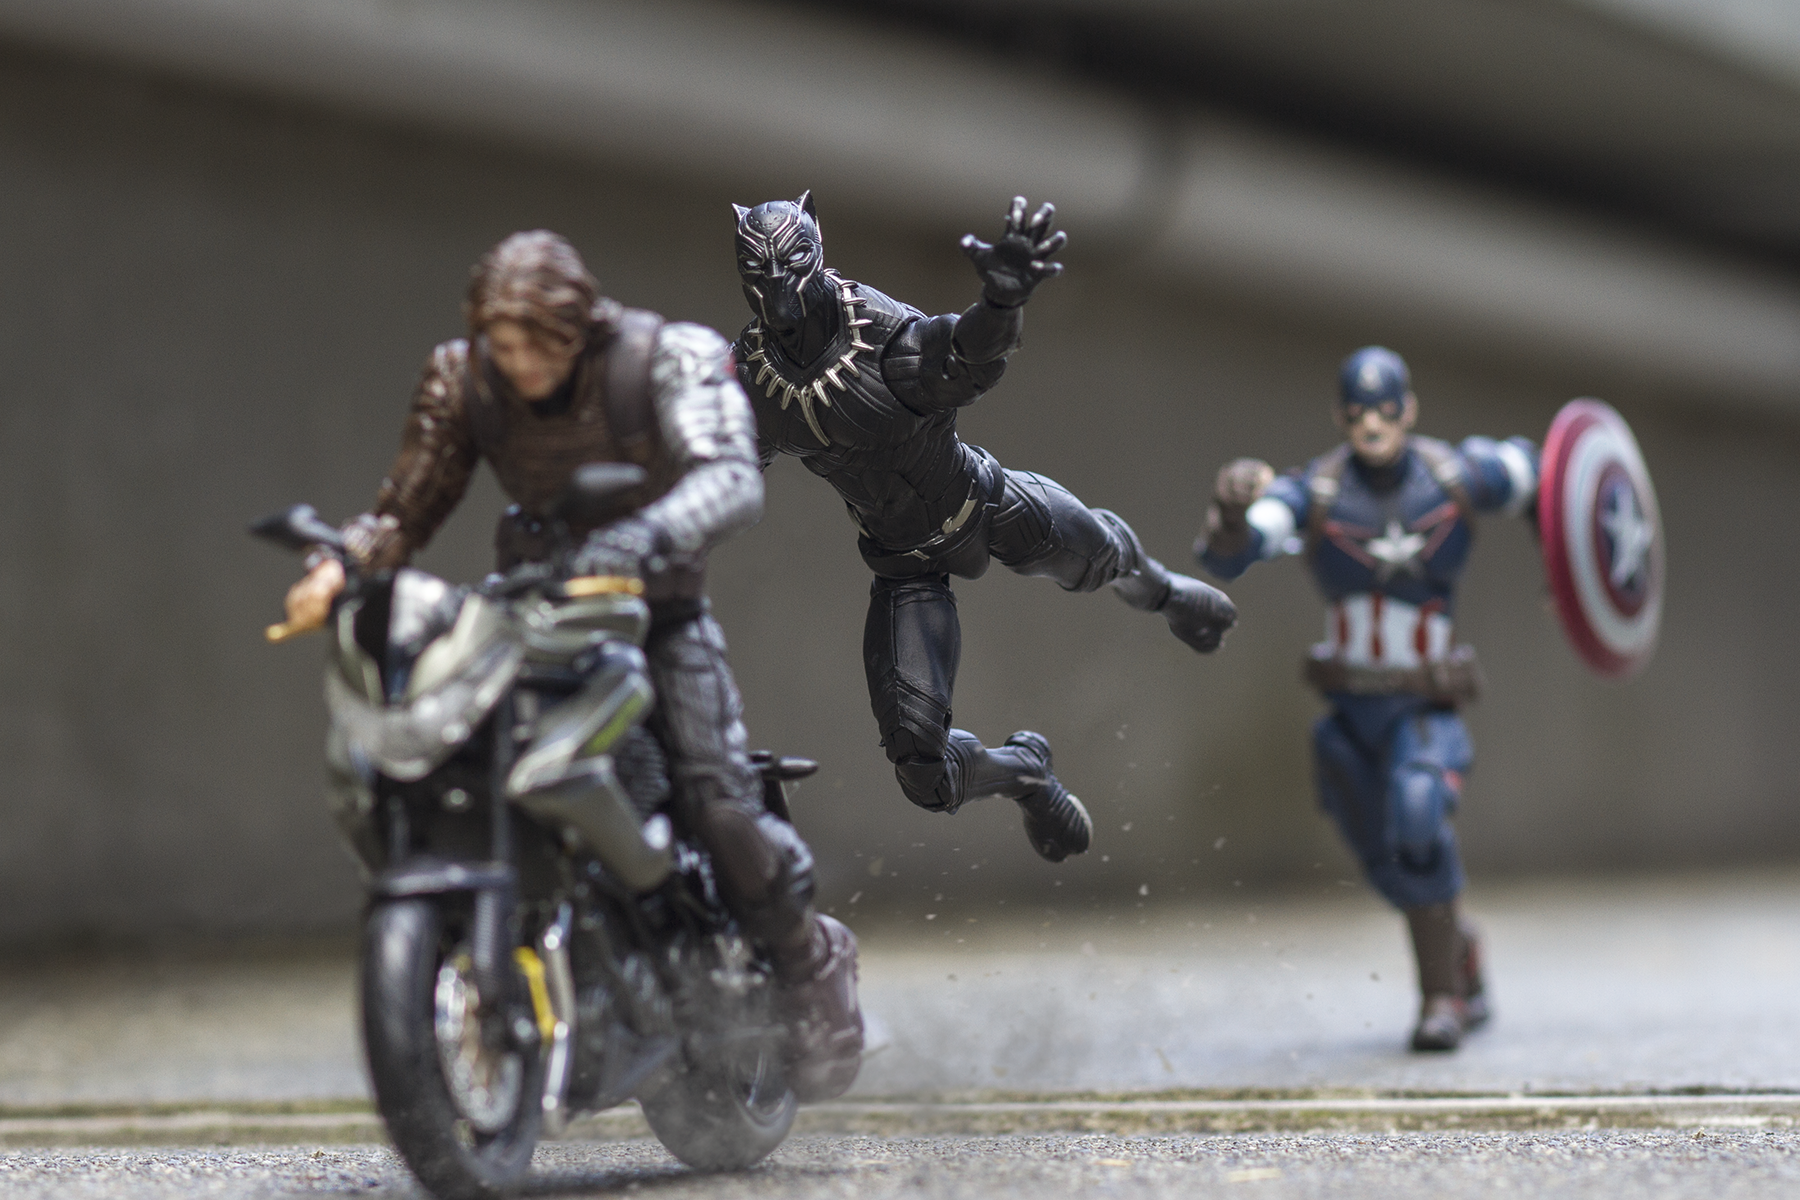 Toy Photo Safari recap from Father's Figures